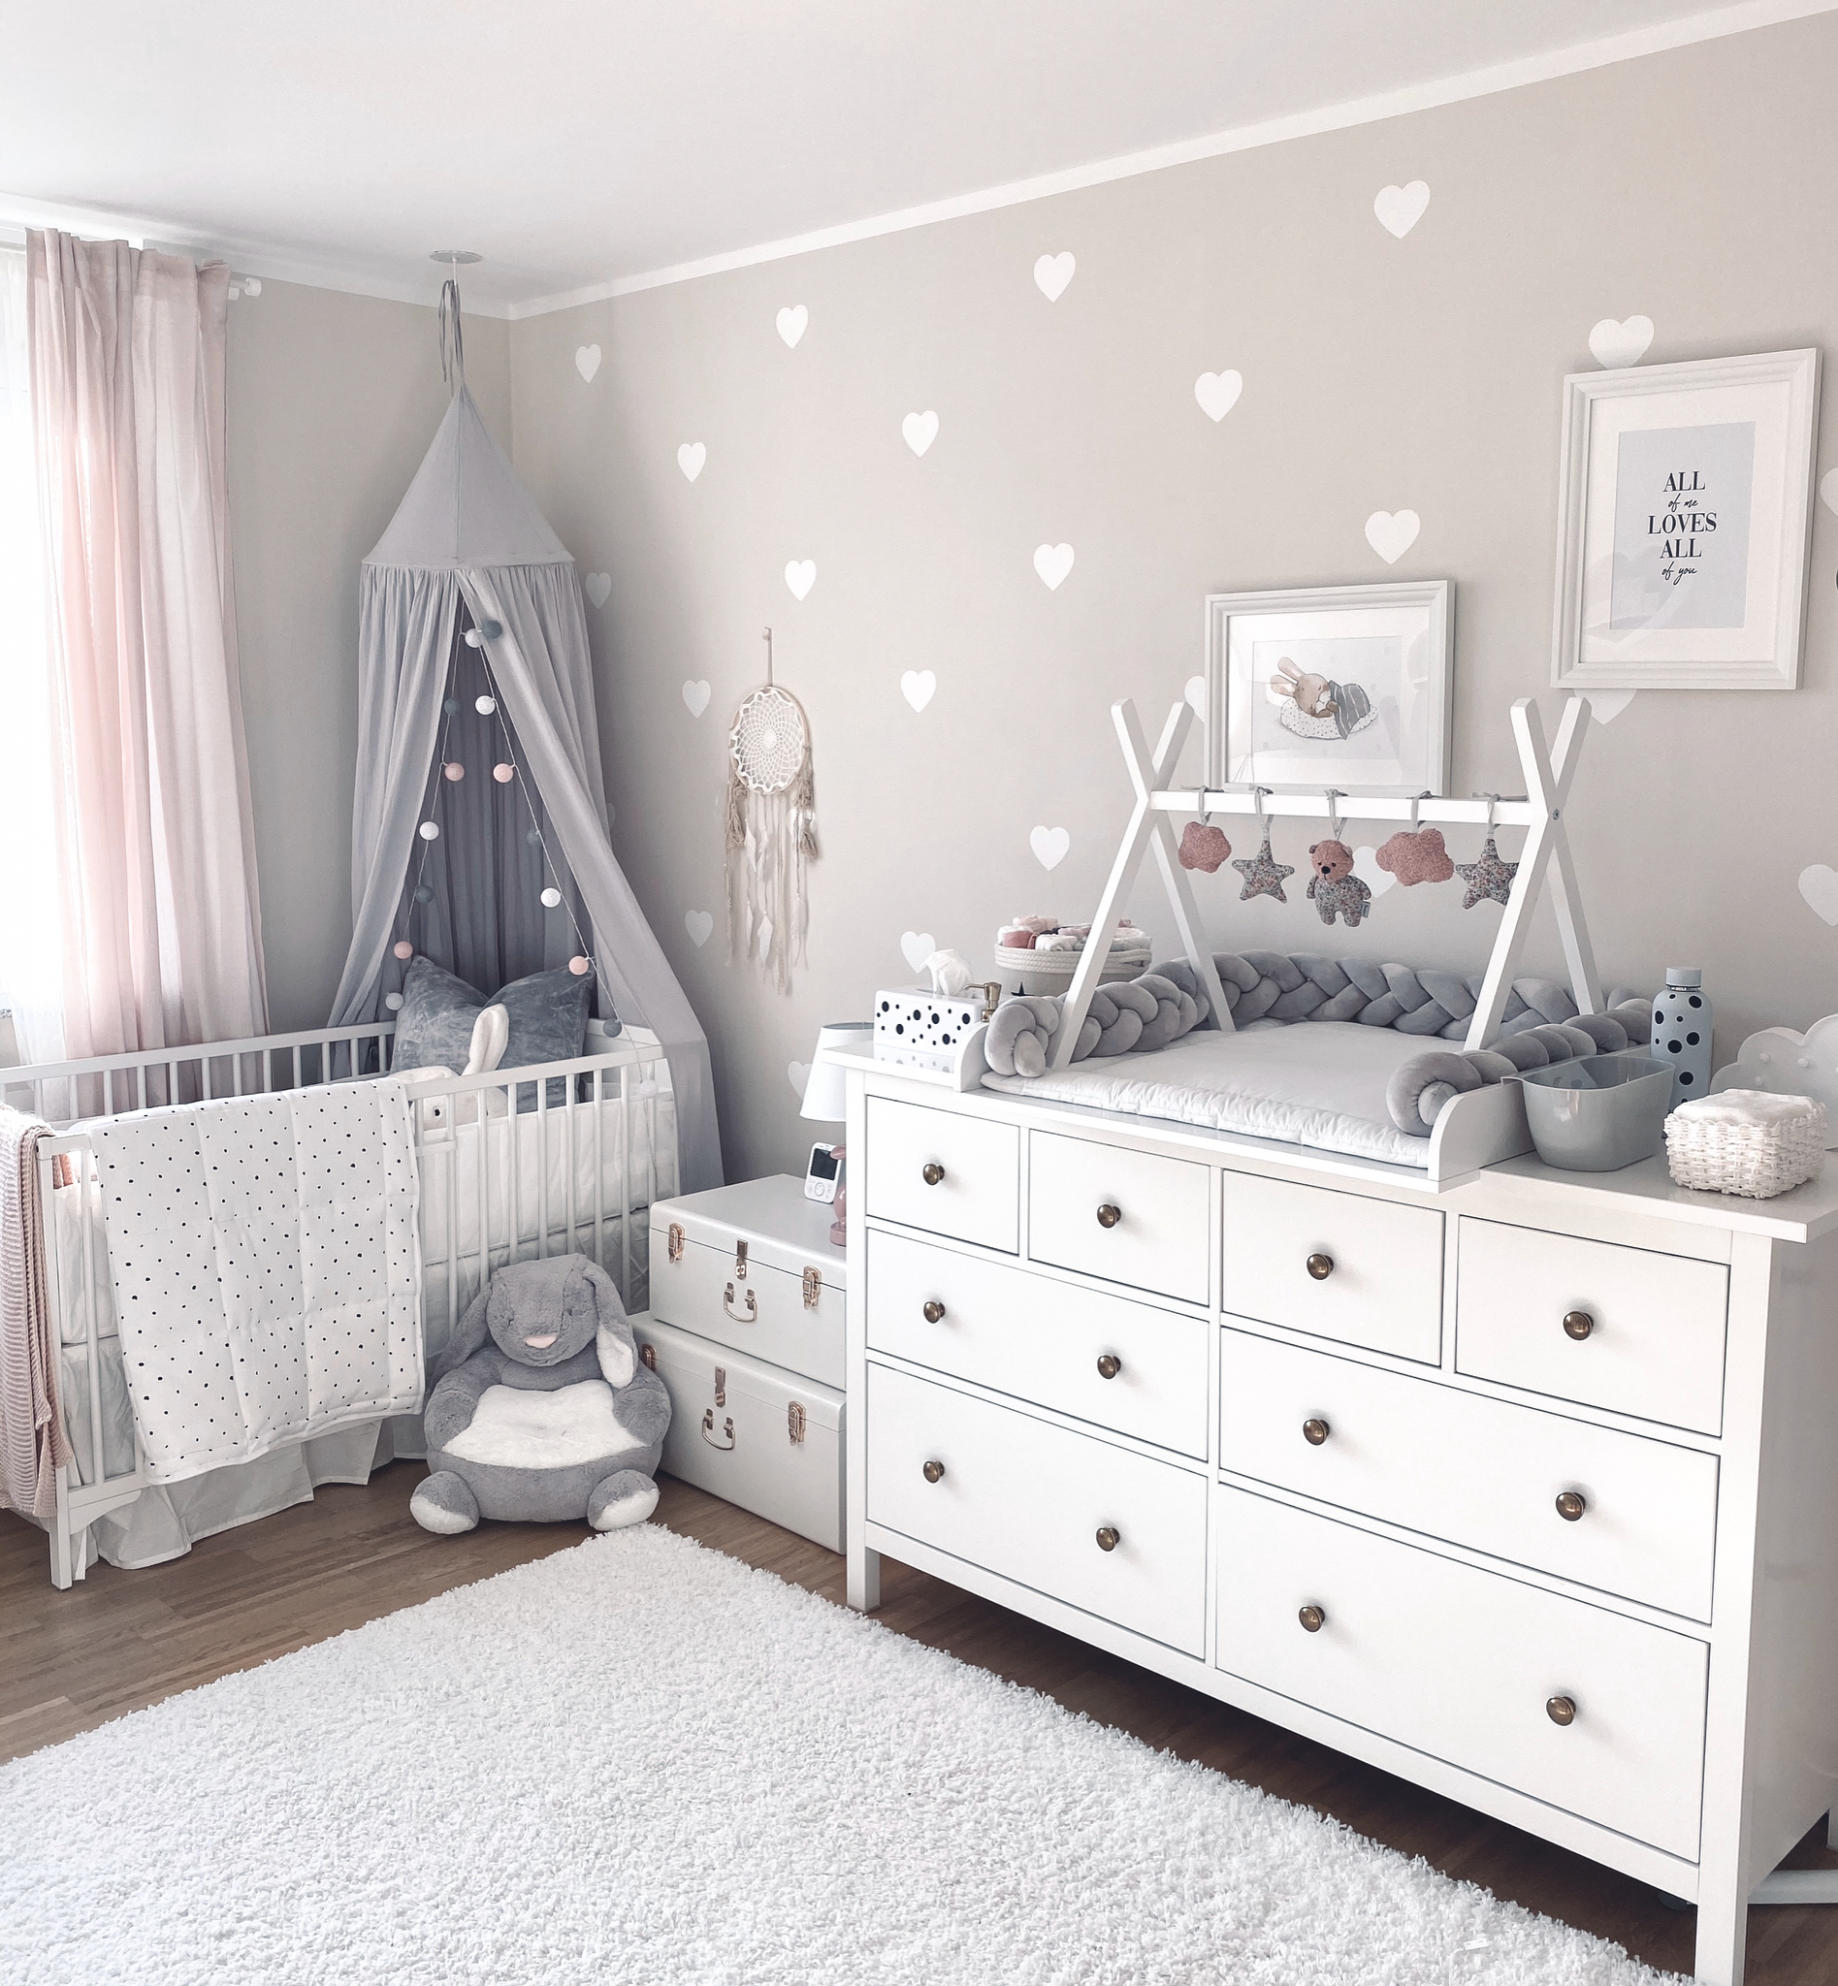 Baby room inspo decoration in 9 | Kinderschlafzimmer, Zimmer ..